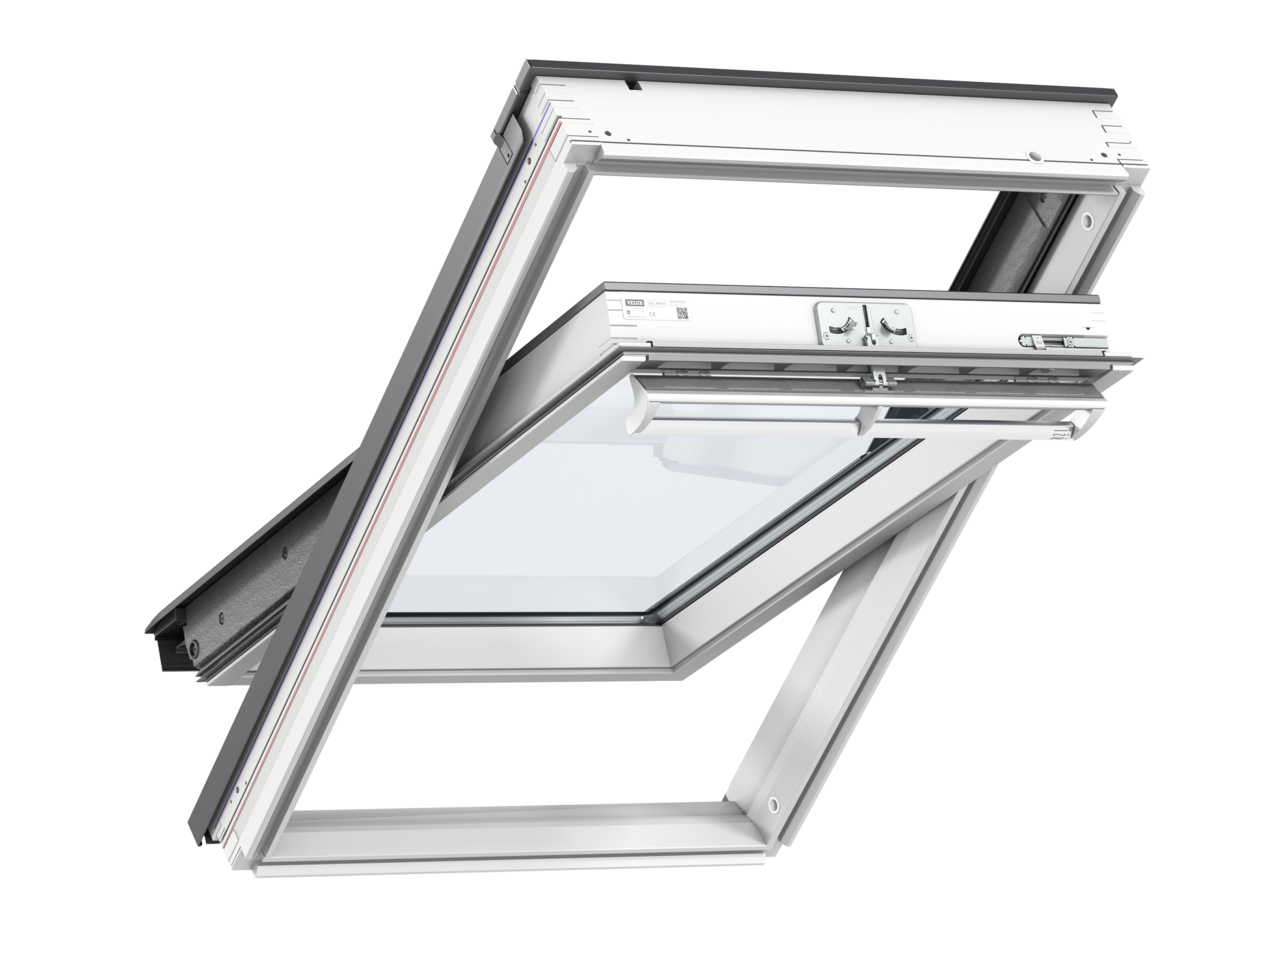 Velux GGL FK06 660 x 1180mm Centre Pivot 62Pane Roof Window - White Painted